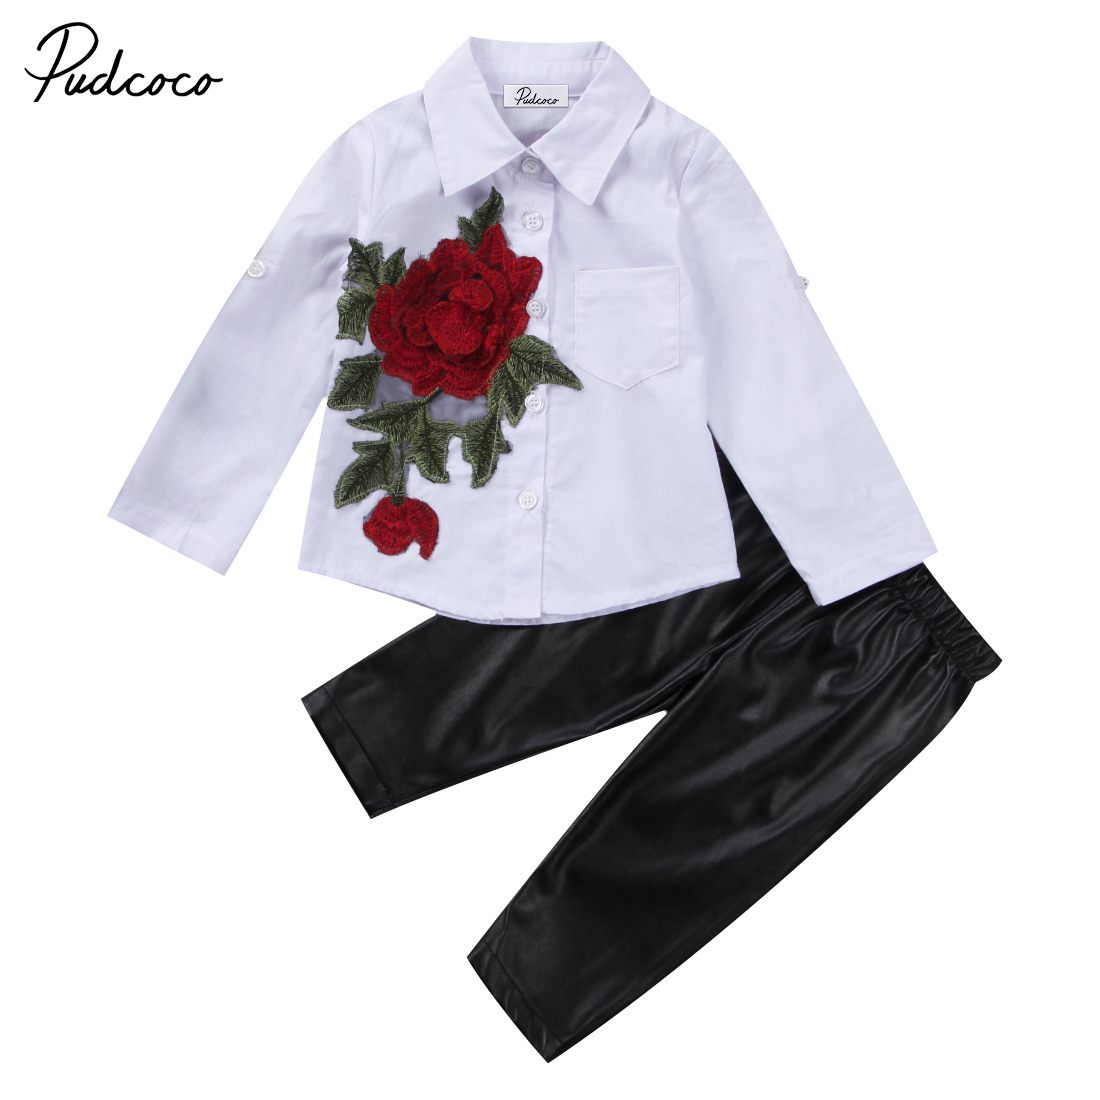 2PCS Fashion Children Girls Clothes Long Sleeve Embroidery Rose Flower Shirt Tops +PU Leather Legging Pant Kid Clothing Set family fashion summer tops 2015 clothers short sleeve t shirt stripe navy style shirt clothes for mother dad and children